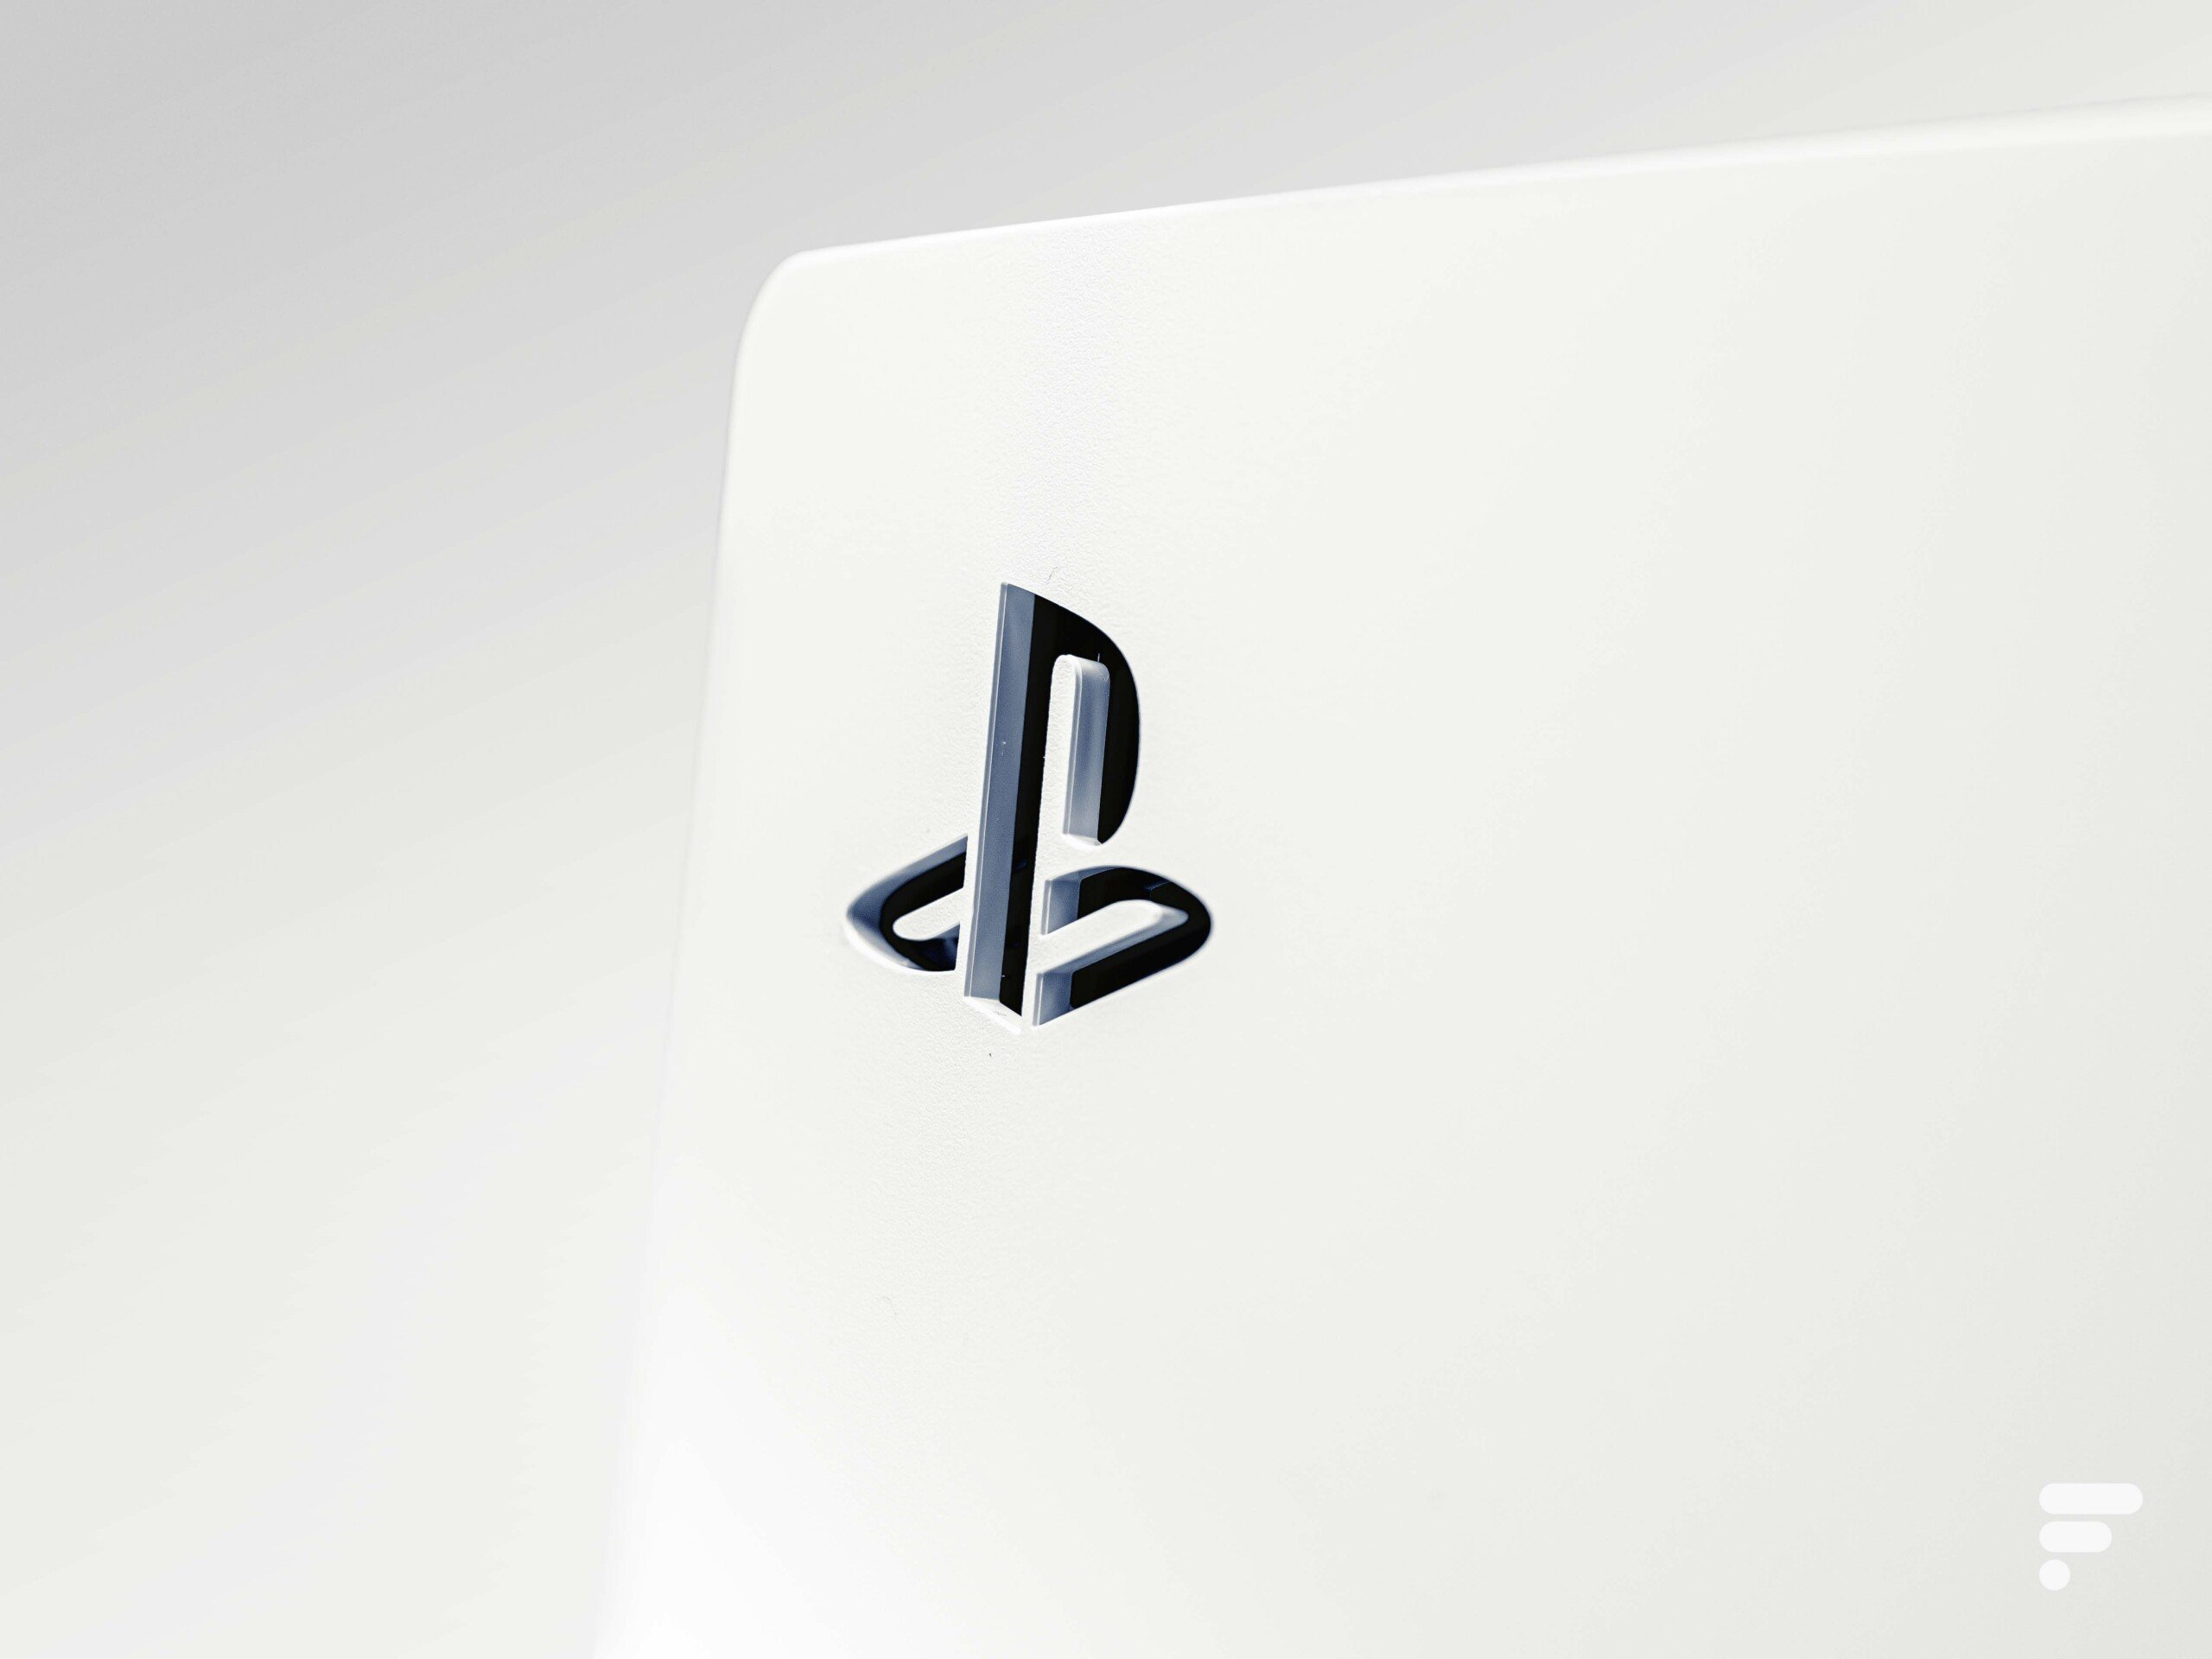 PS5 : Sony veut ouvrir sa propre boutique PlayStation Direct en Europe